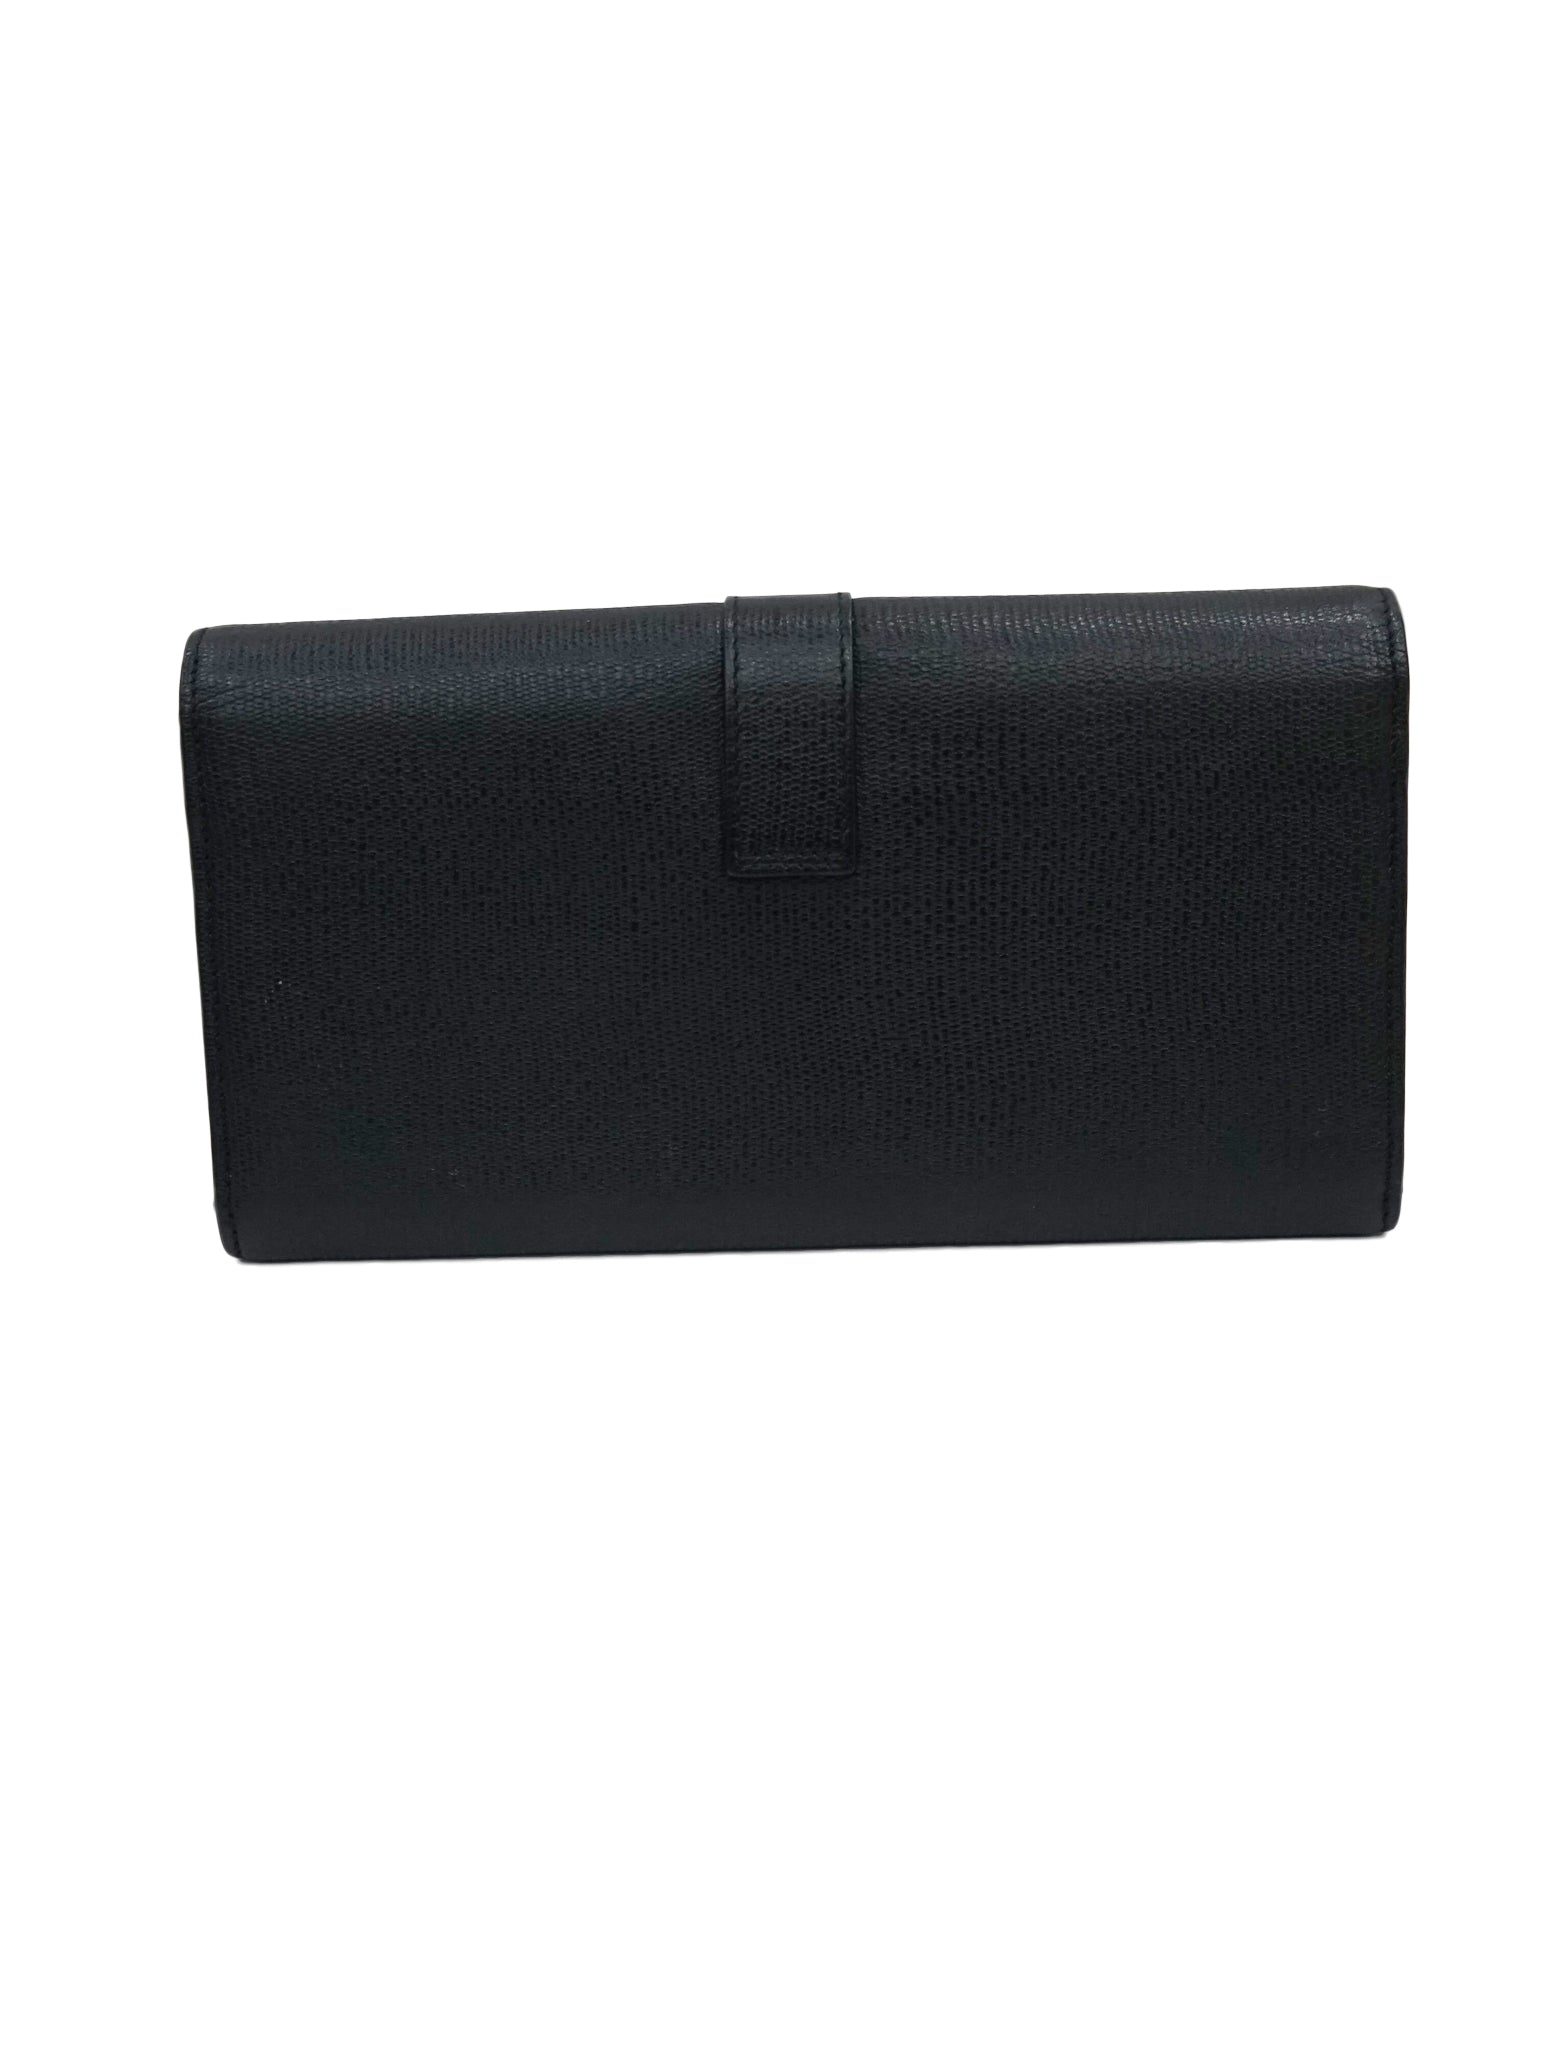 BLACK LEATHER Y LINE CONTINENTAL WALLET